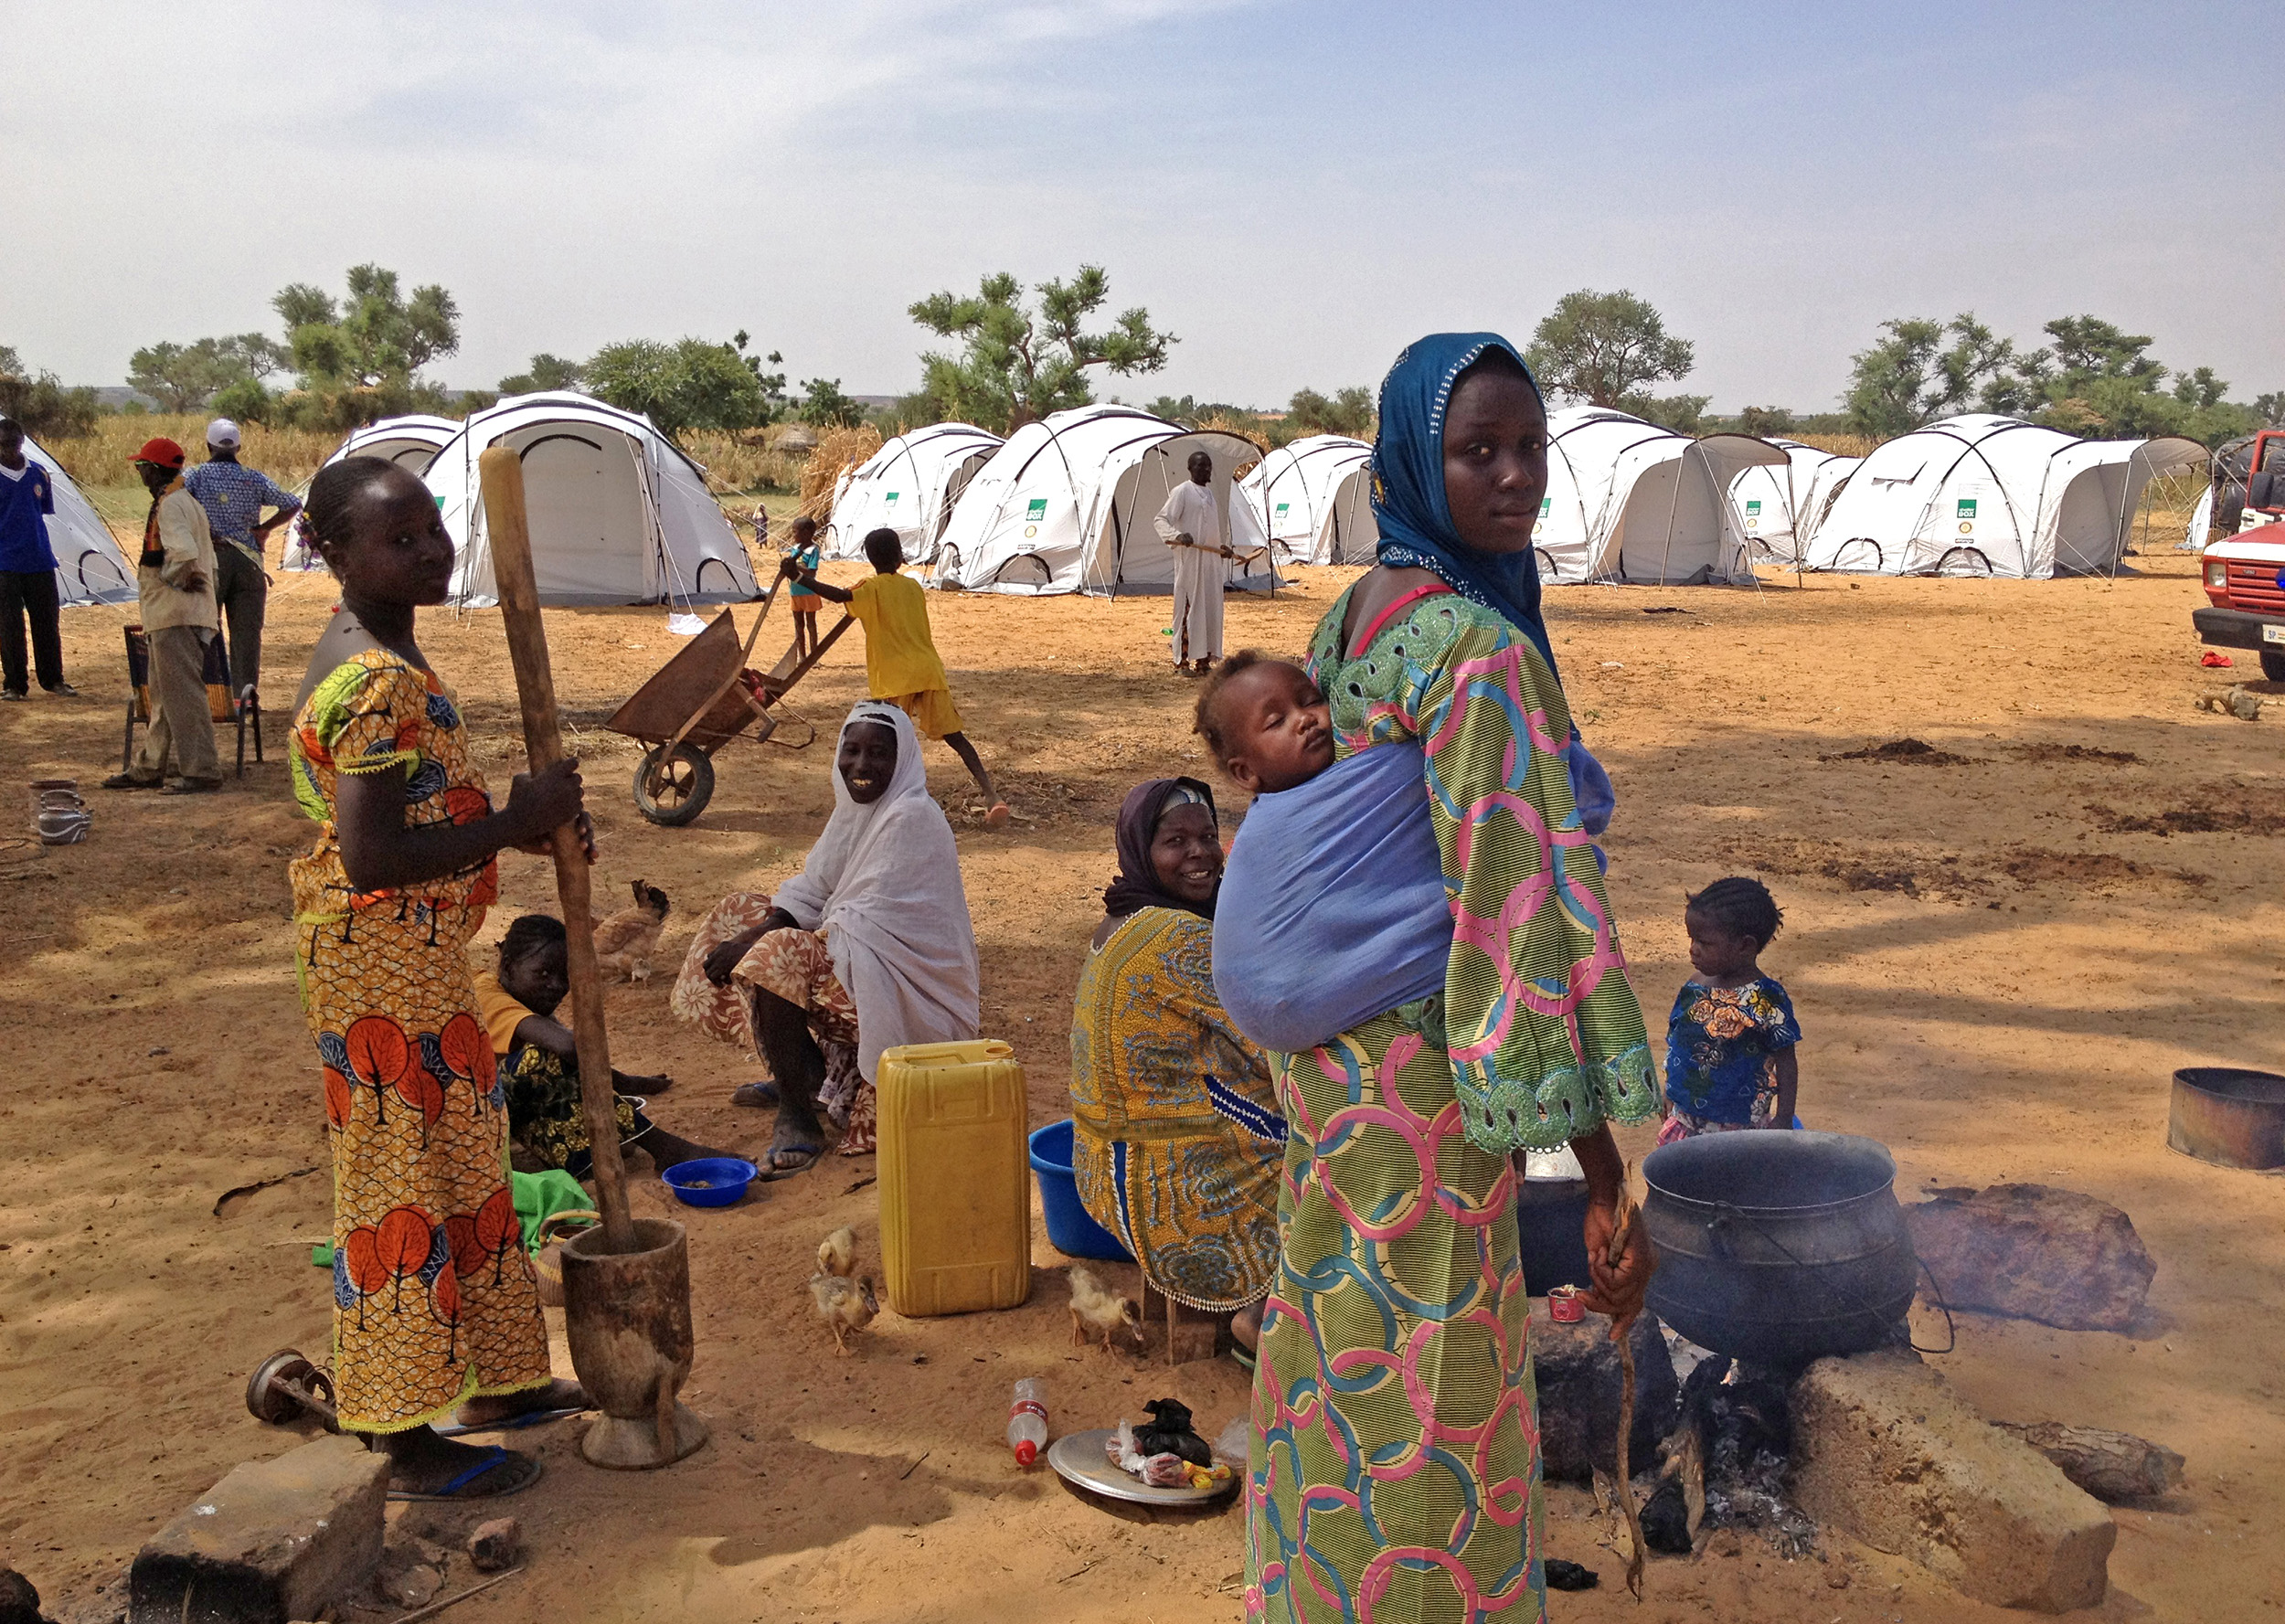 ShelterBox in Niger following extreme flooding that left thousands of families homeless.